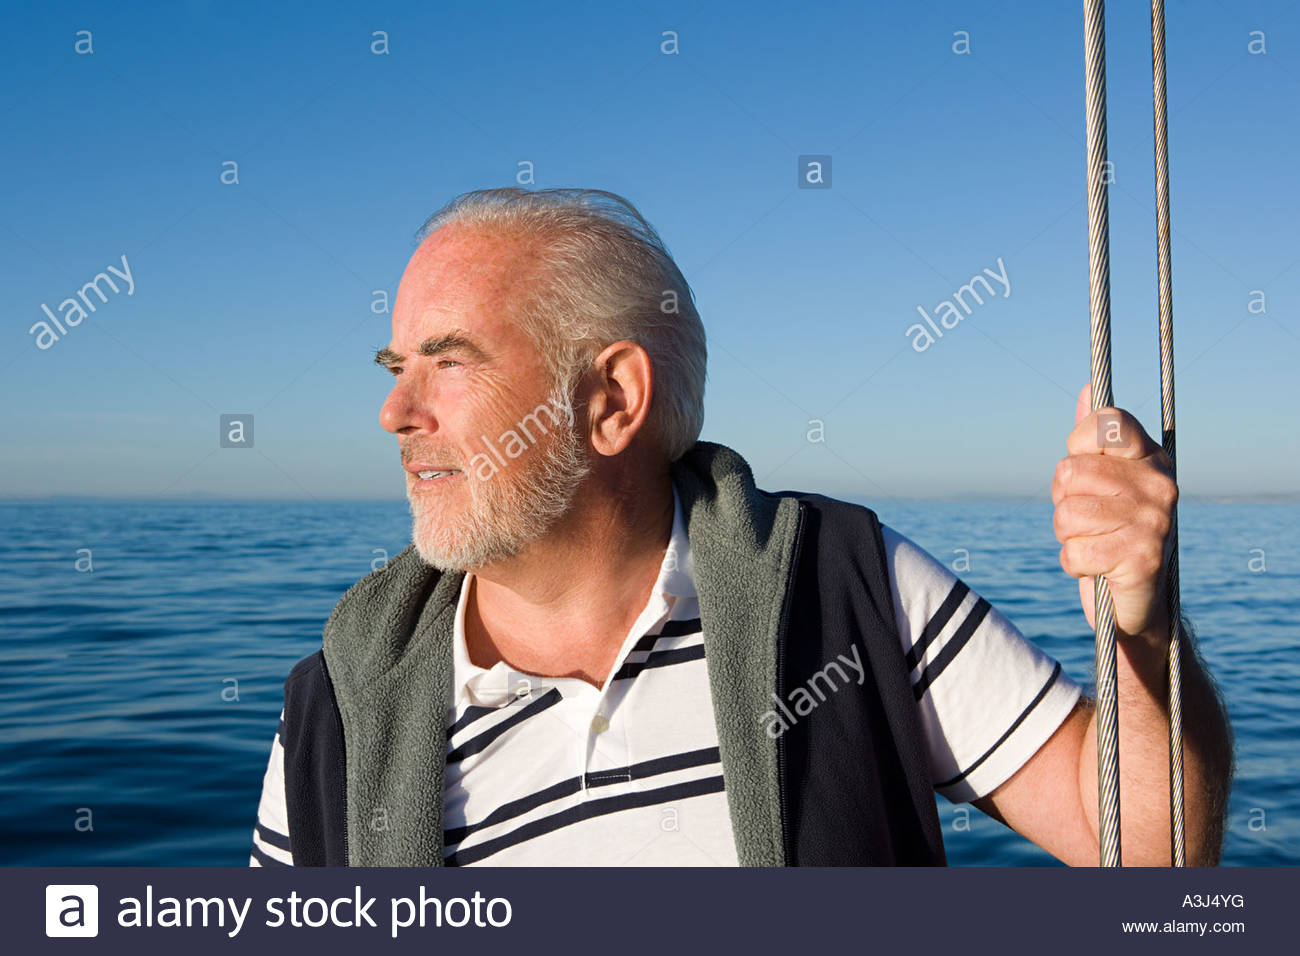 Man looking out to sea - Stock Image